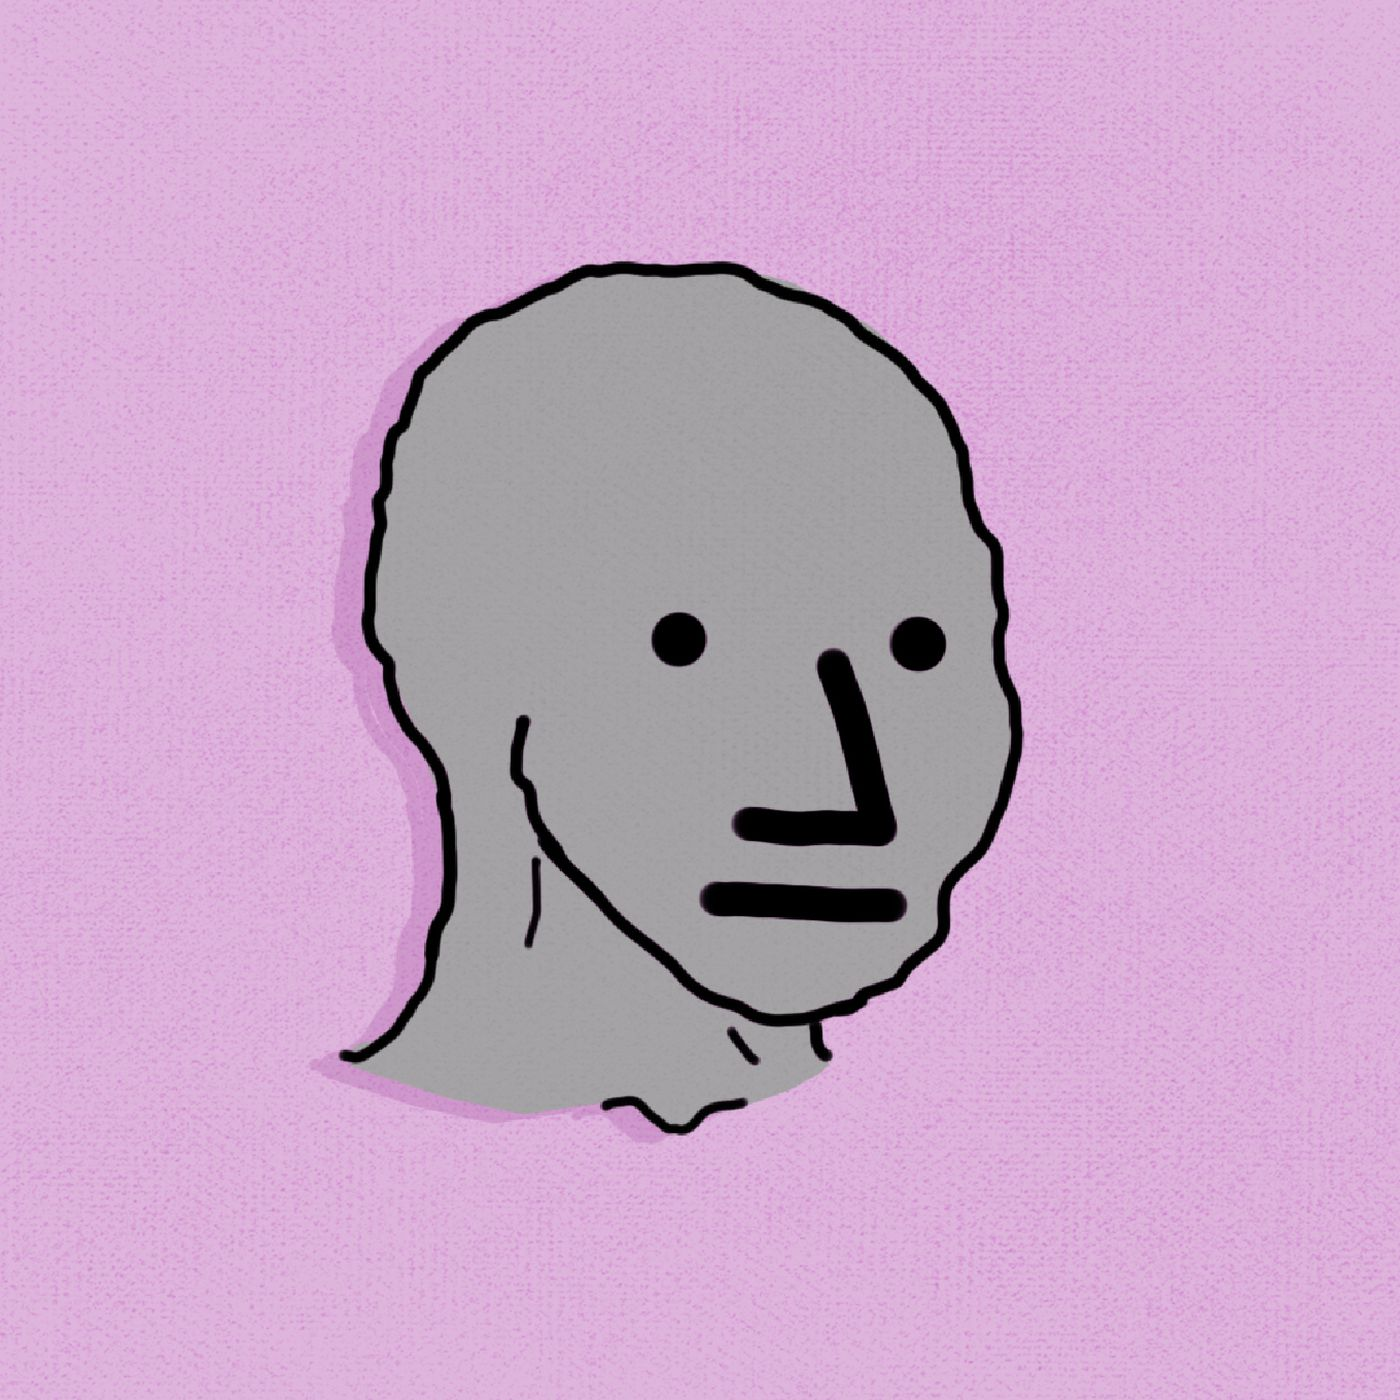 The NPC meme went viral when the media gave it oxygen - The